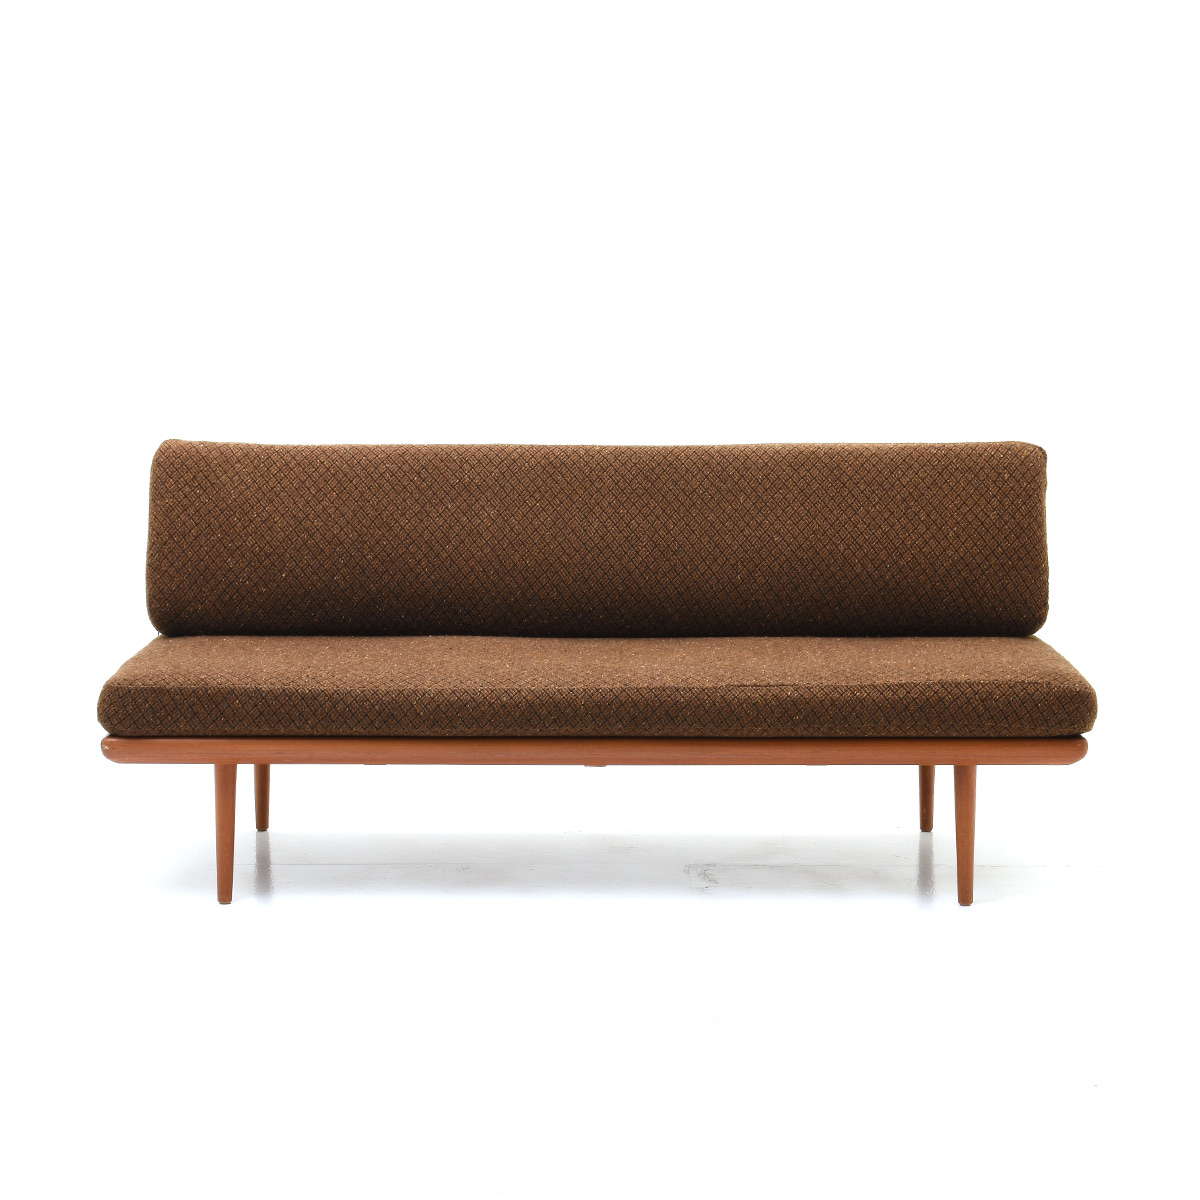 Daybed, France and Son, Modell Minerva - 3